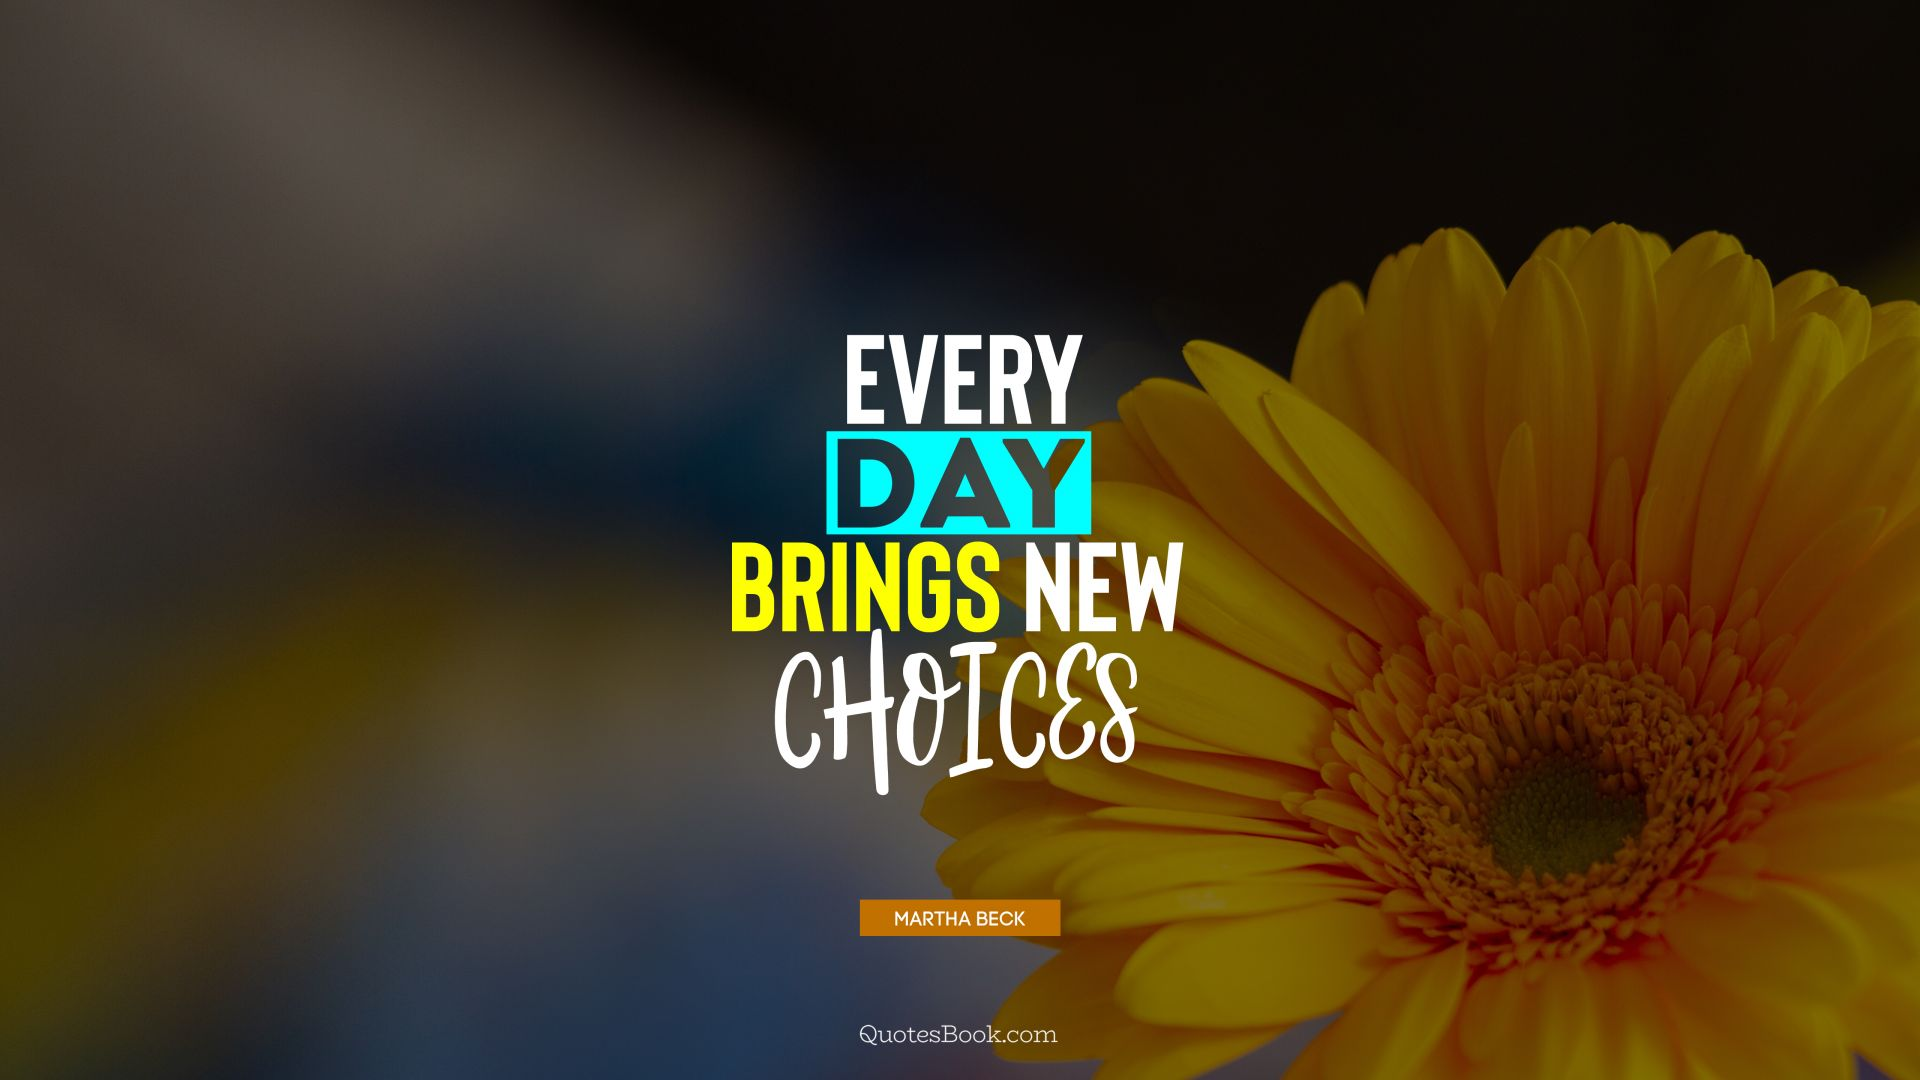 Every day brings new choices. - Quote by Martha Beck